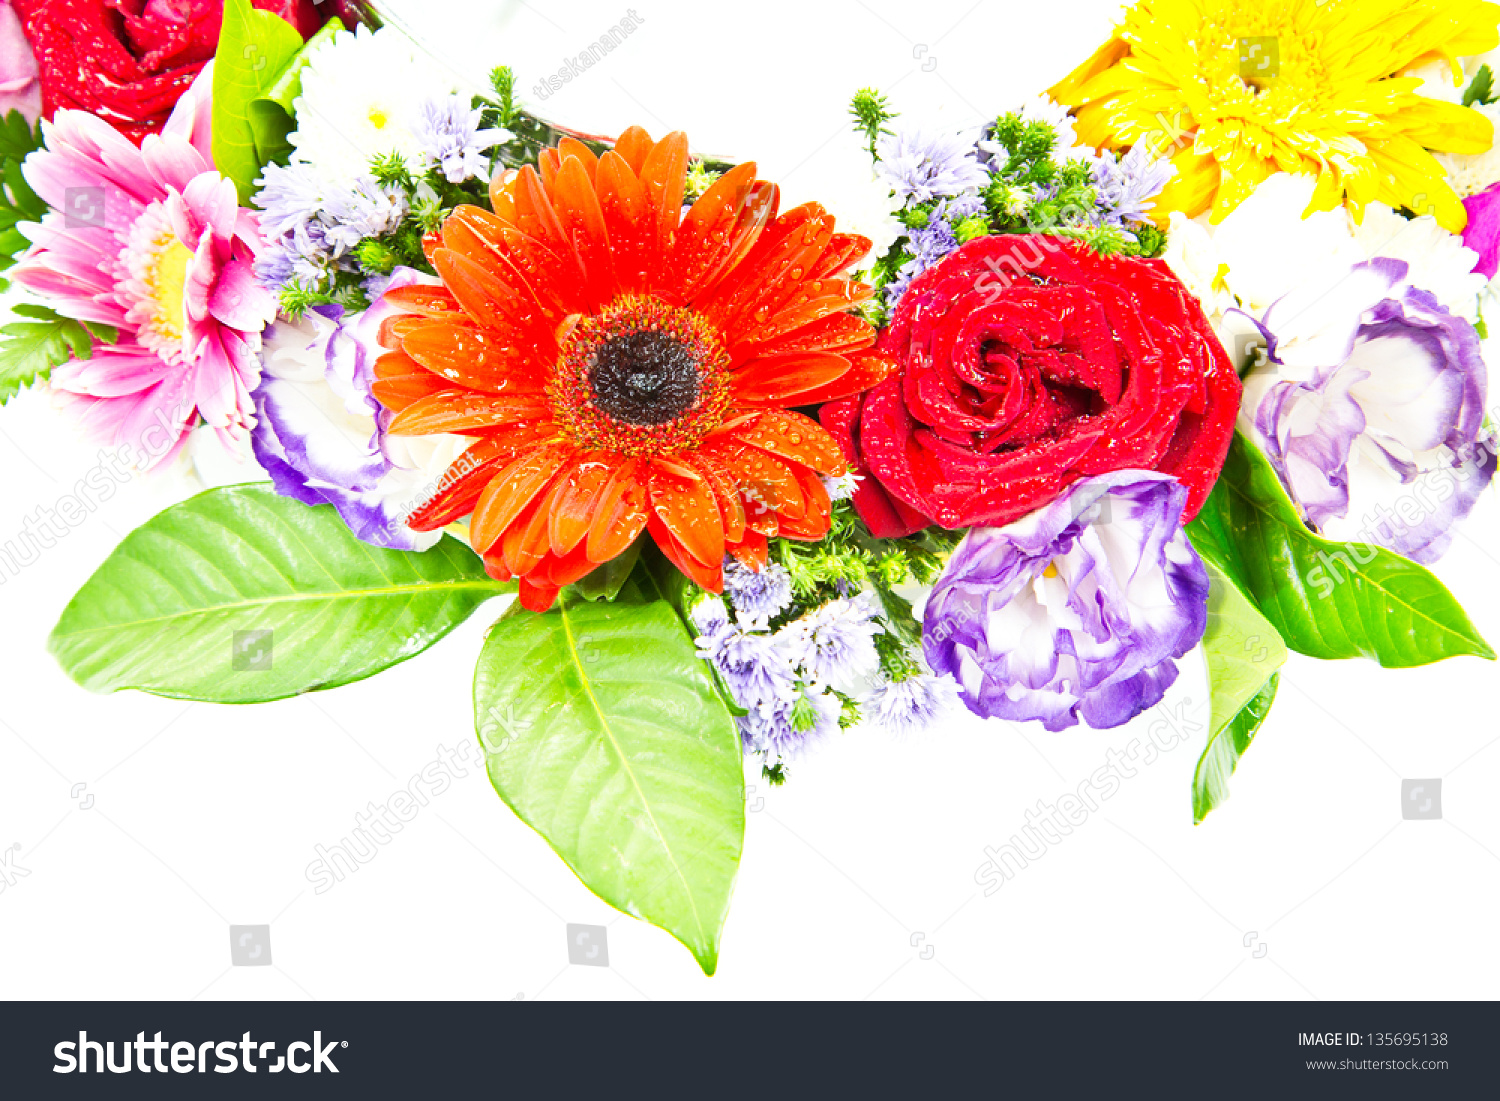 Mixed Colorful Flower Bouquets Isolated On Stock Photo (Royalty Free ...